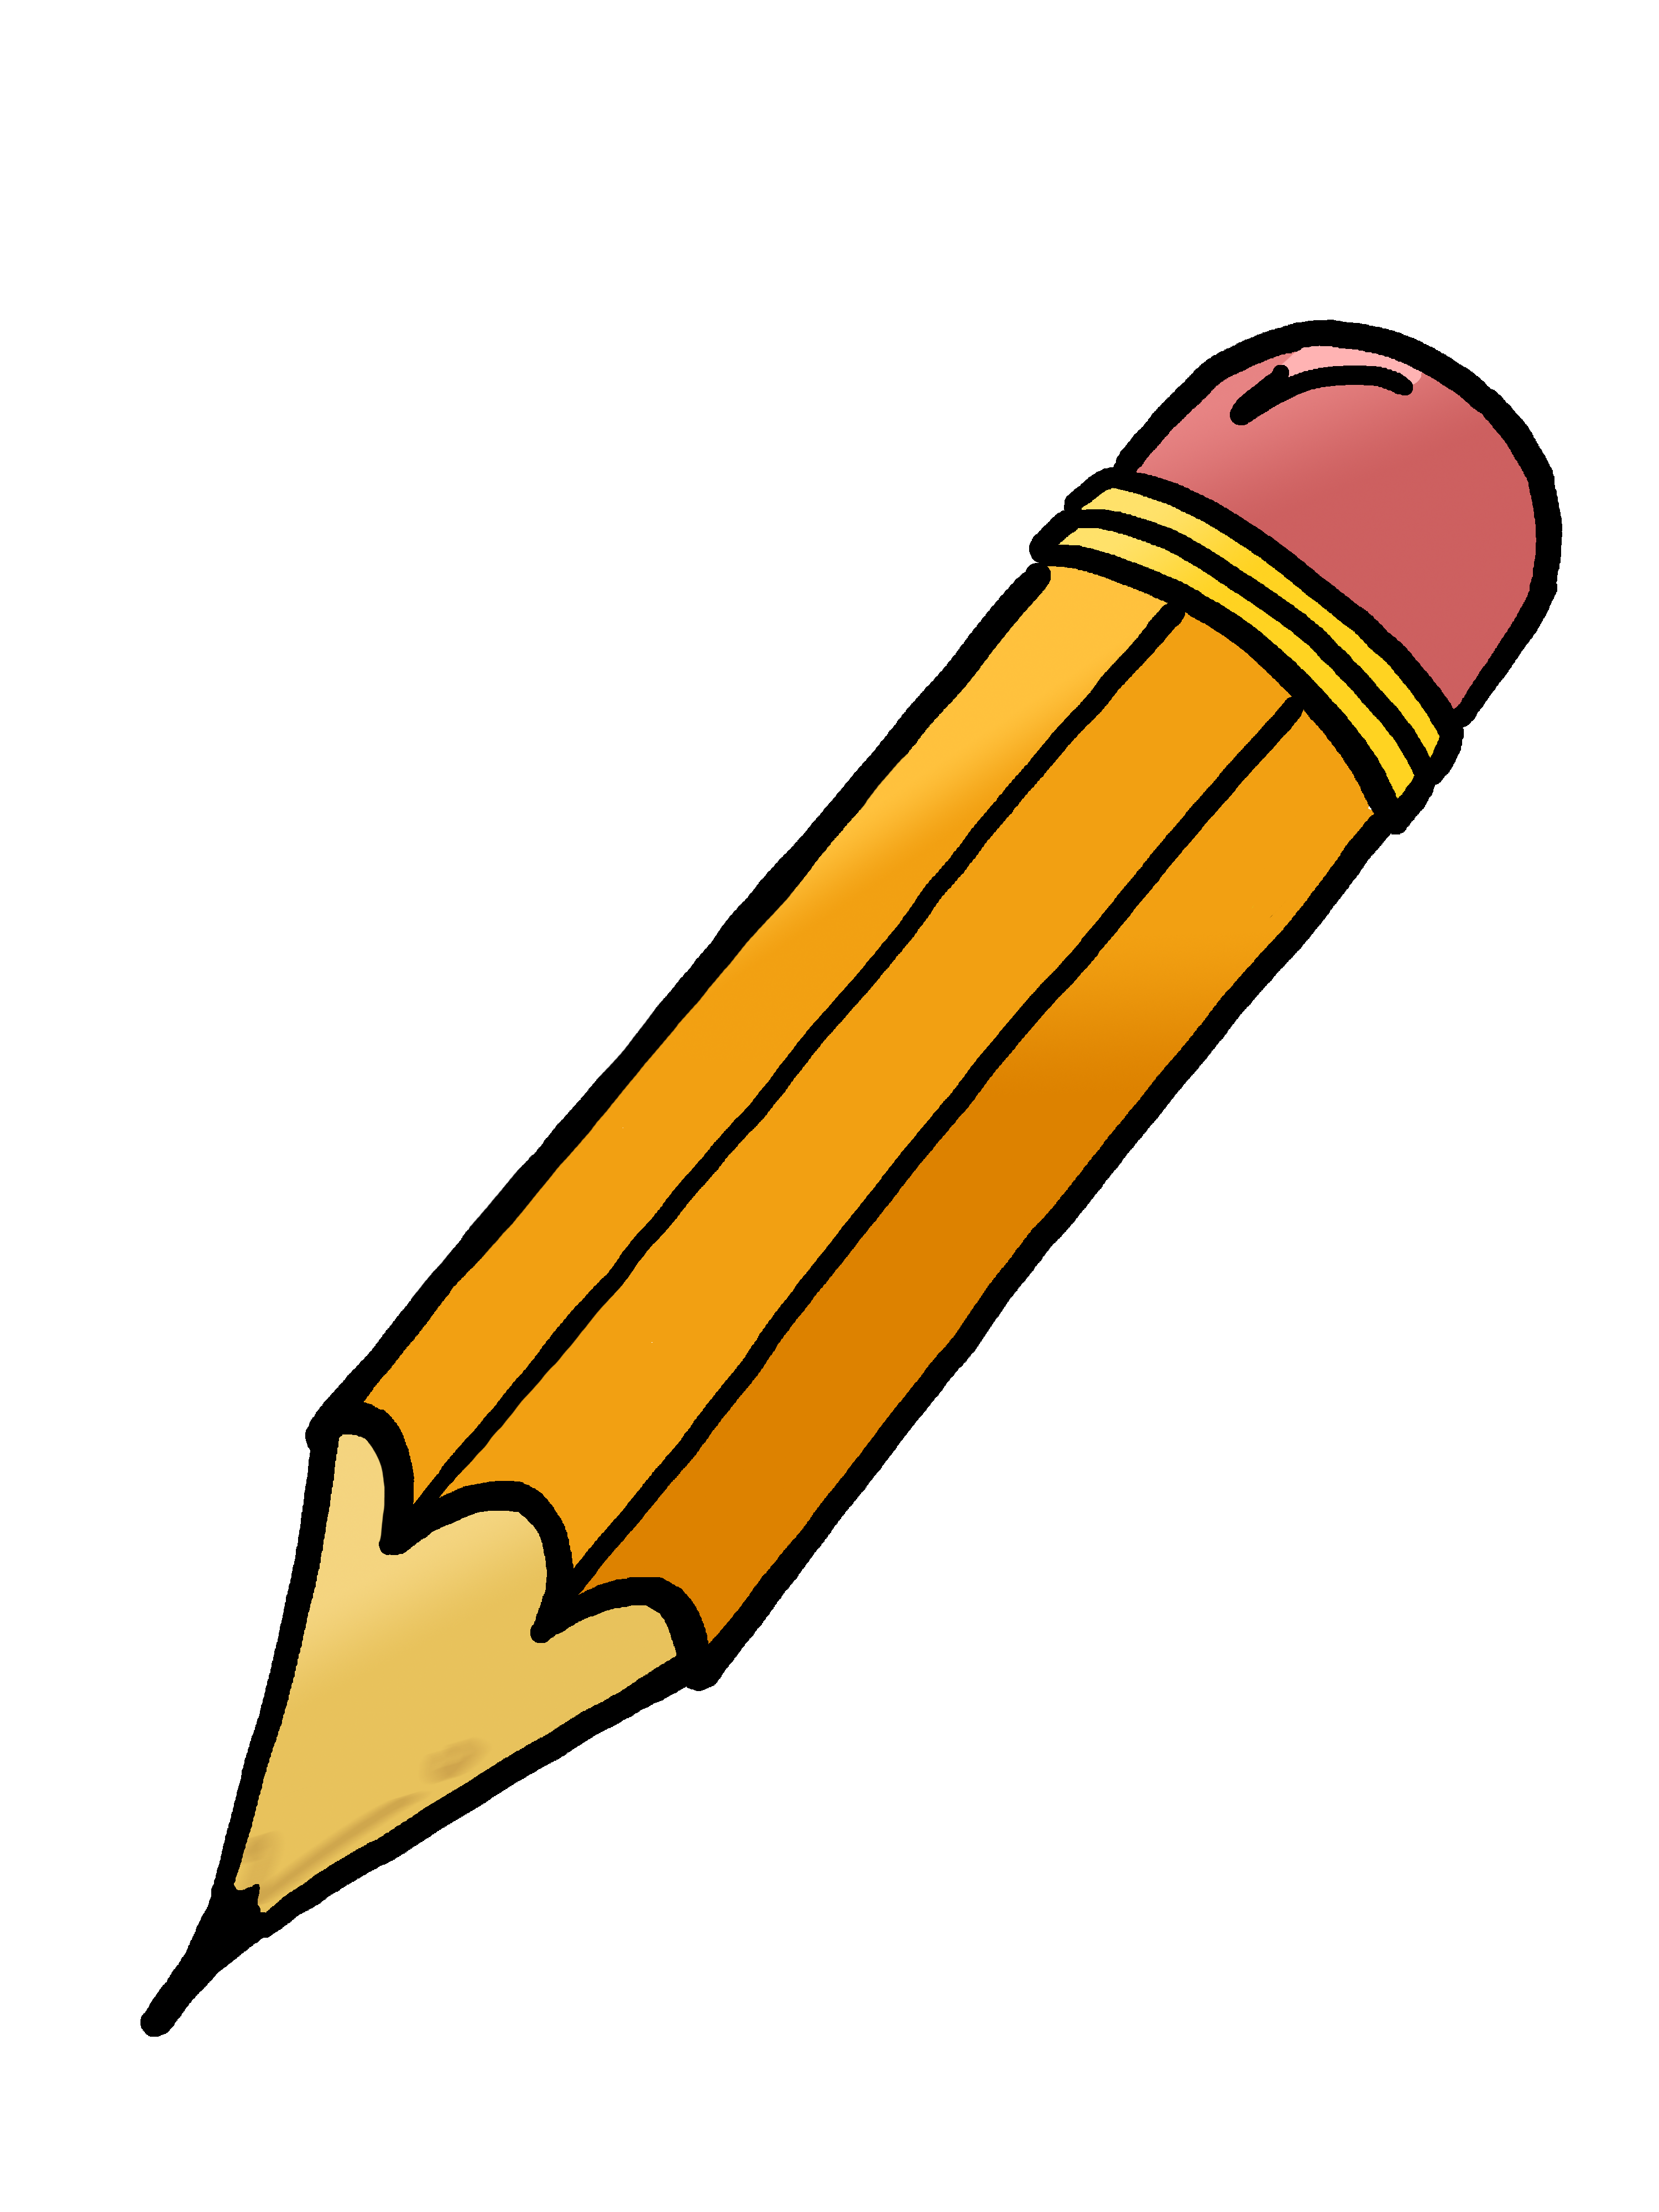 Pencil clipart black and white free images